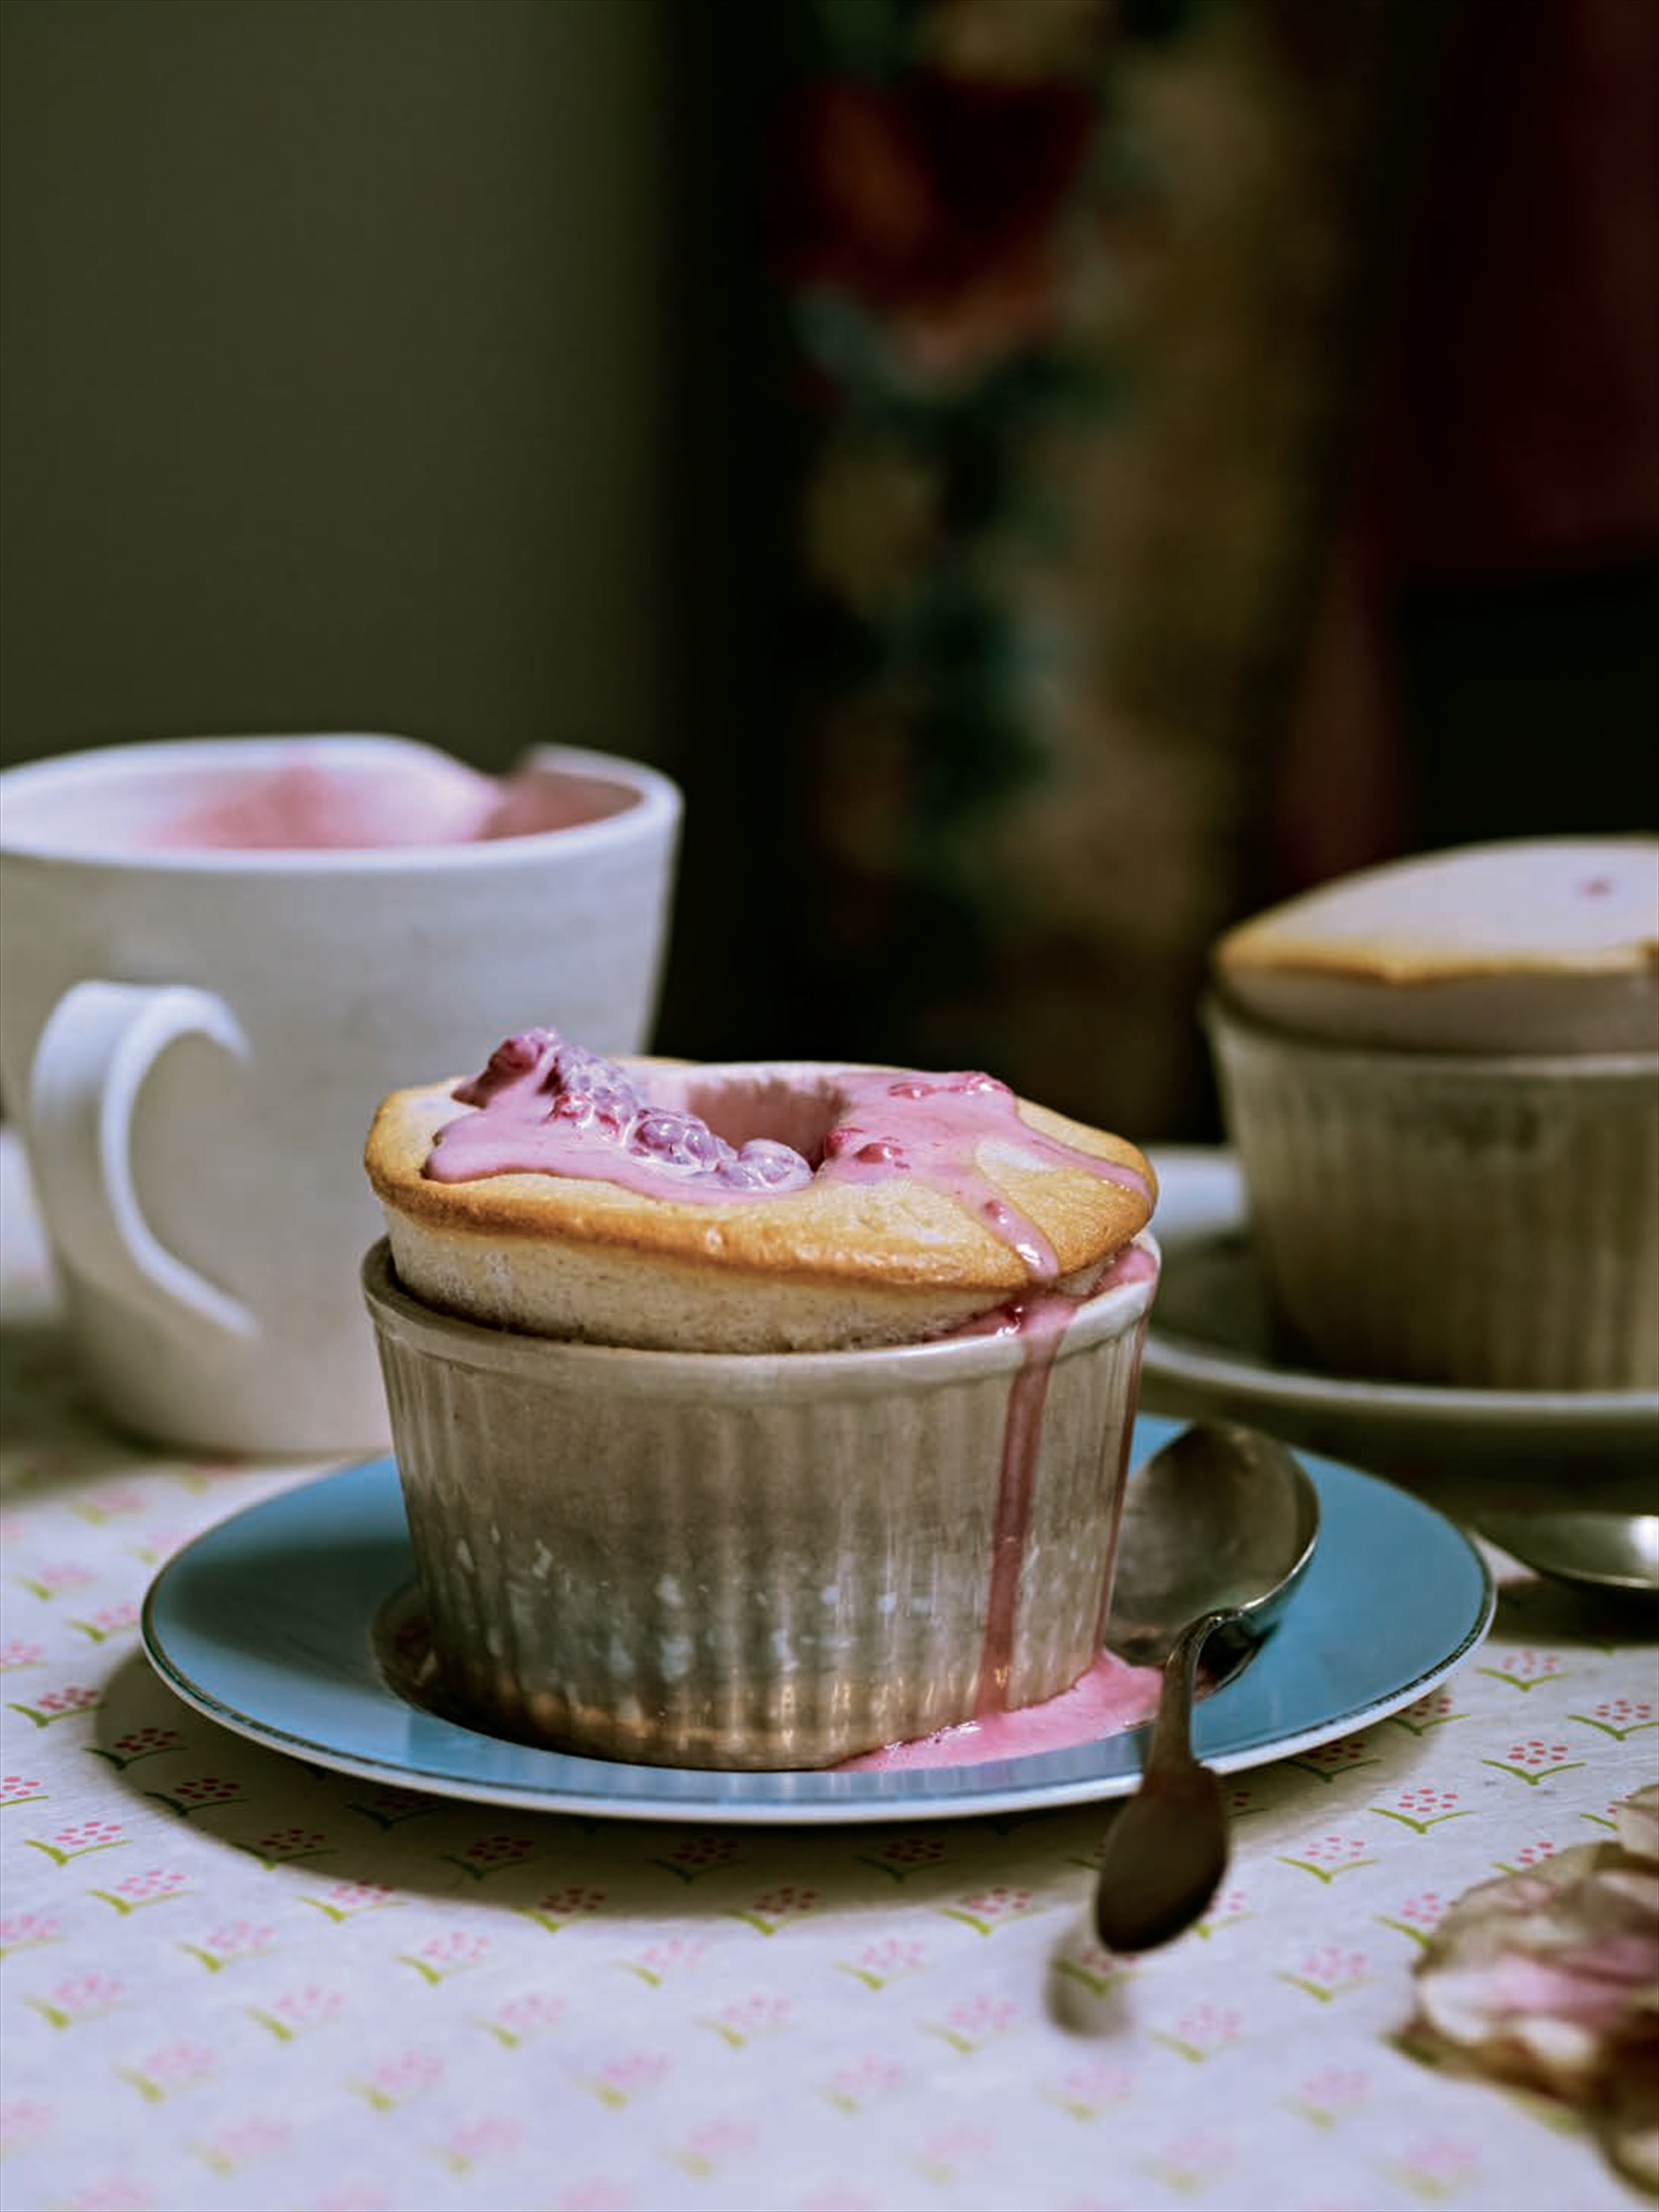 Pomegranate soufflés with rose and raspberry cream